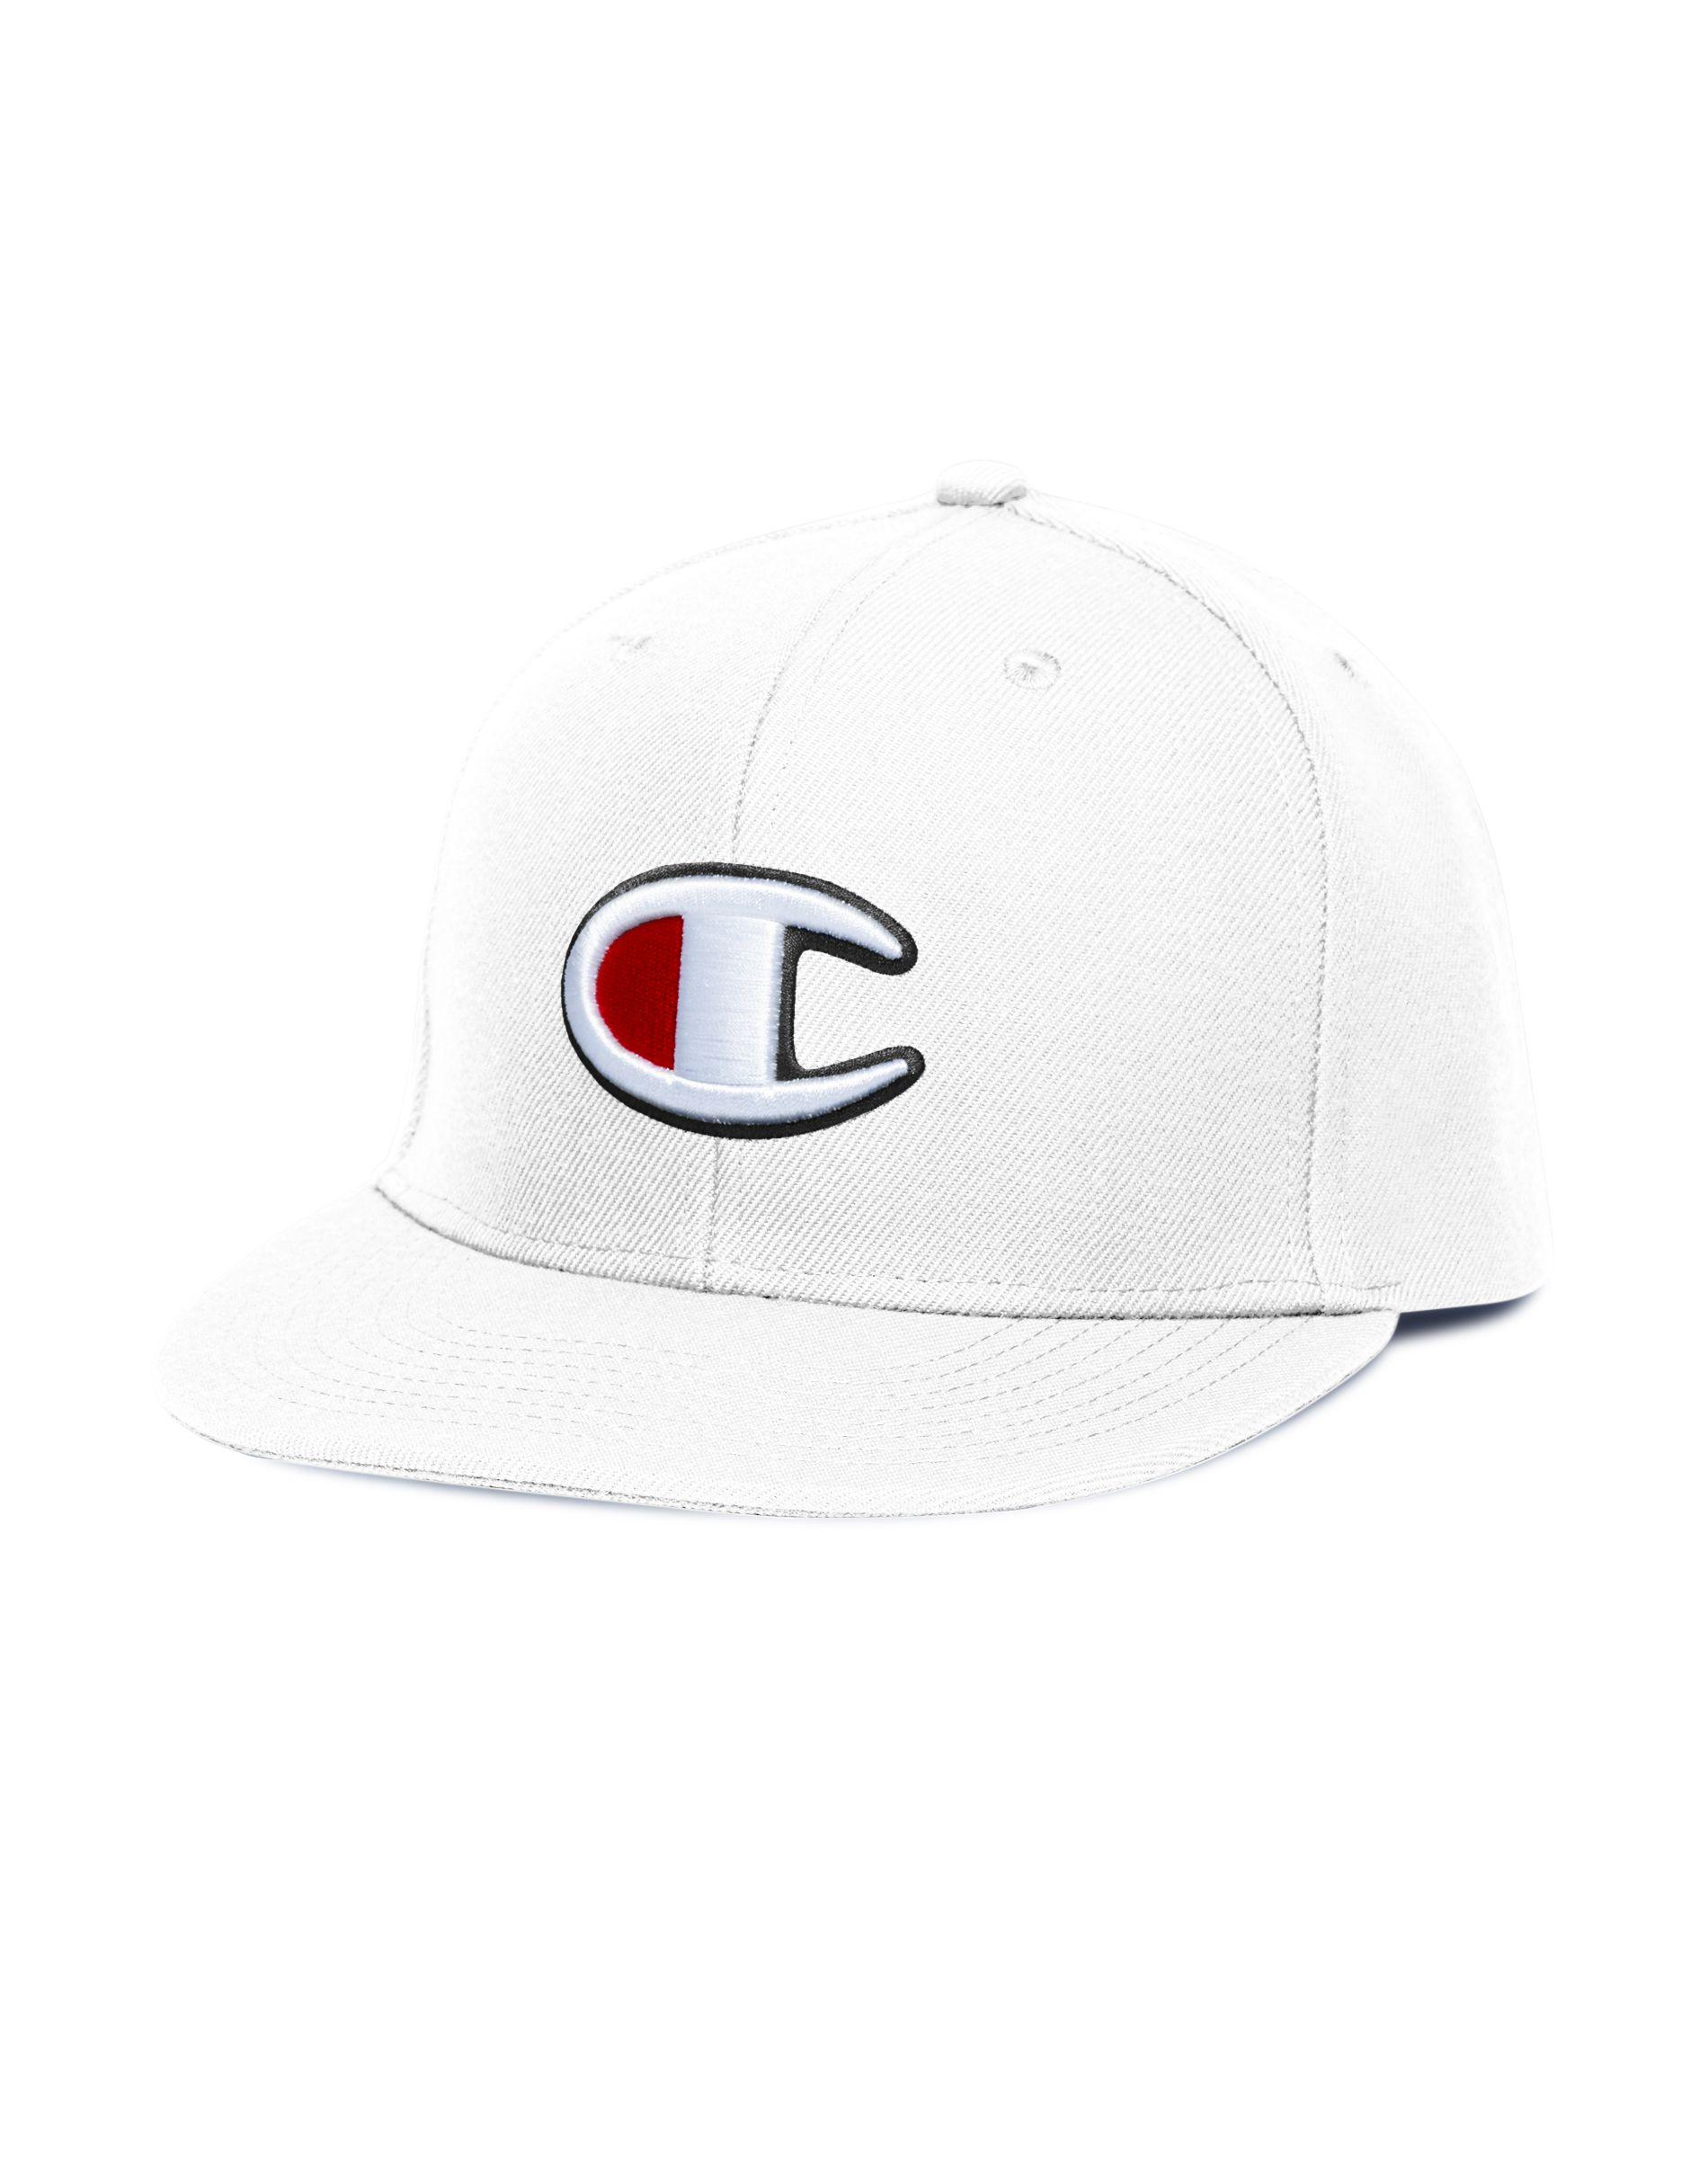 5aa99a7e492 Lyst - Champion Lifetm Snapback Big C Baseball Hat in White for Men